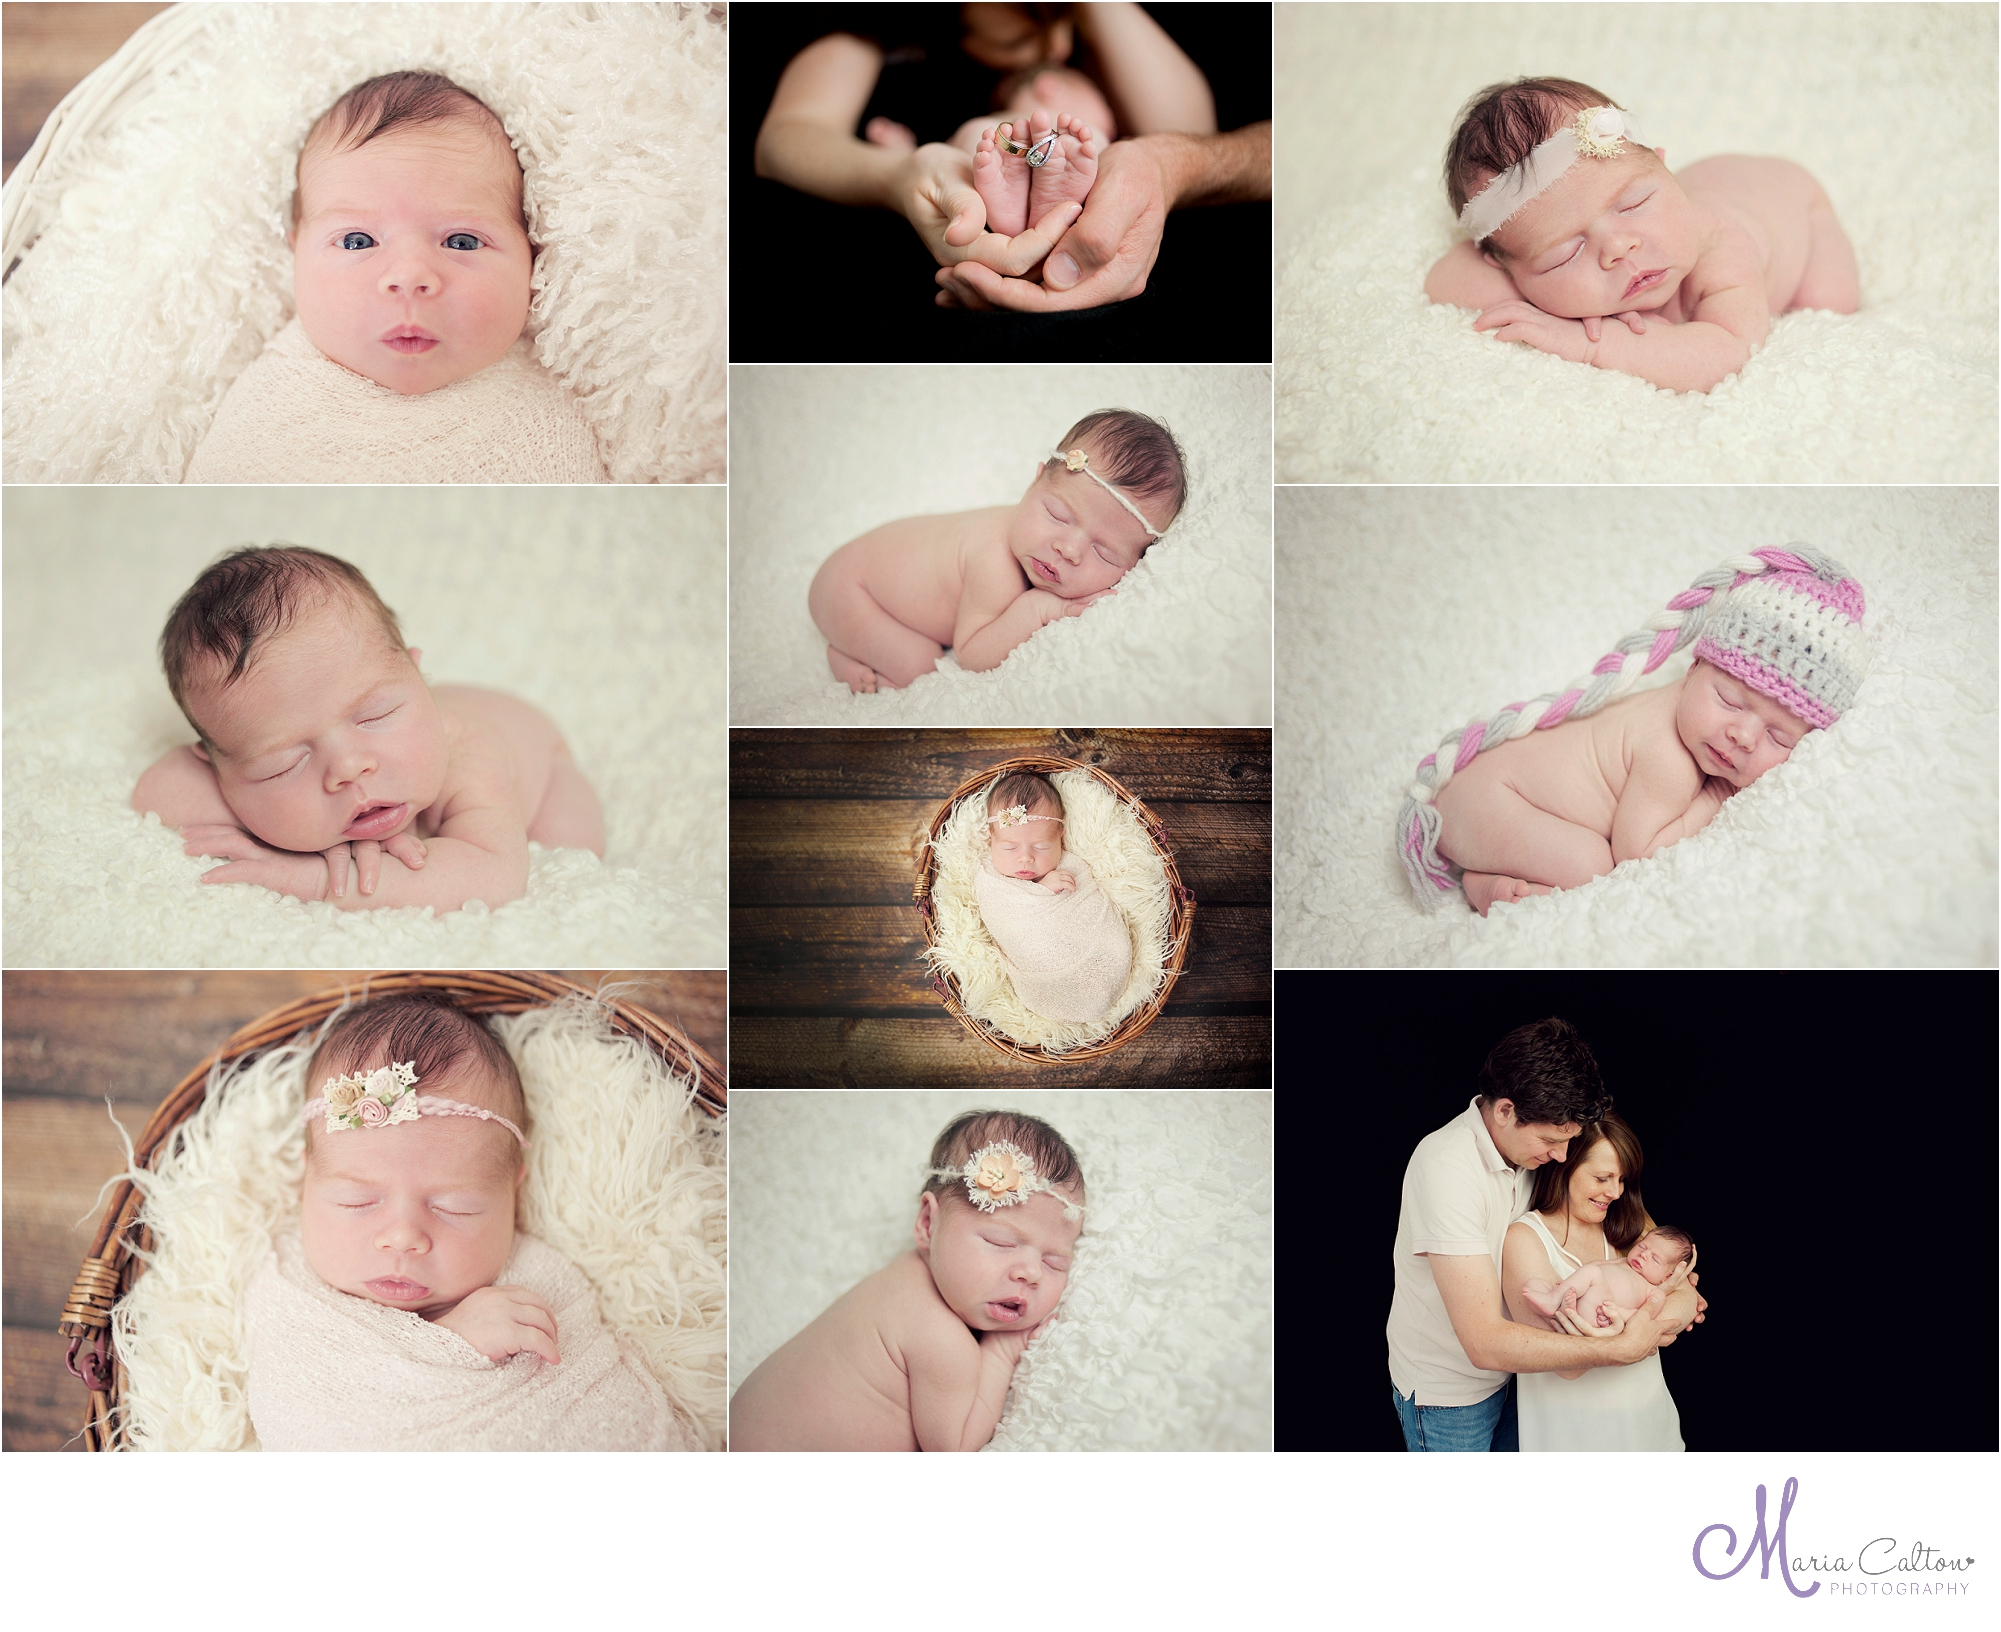 bump 2 baby newborn baby photography barnsley